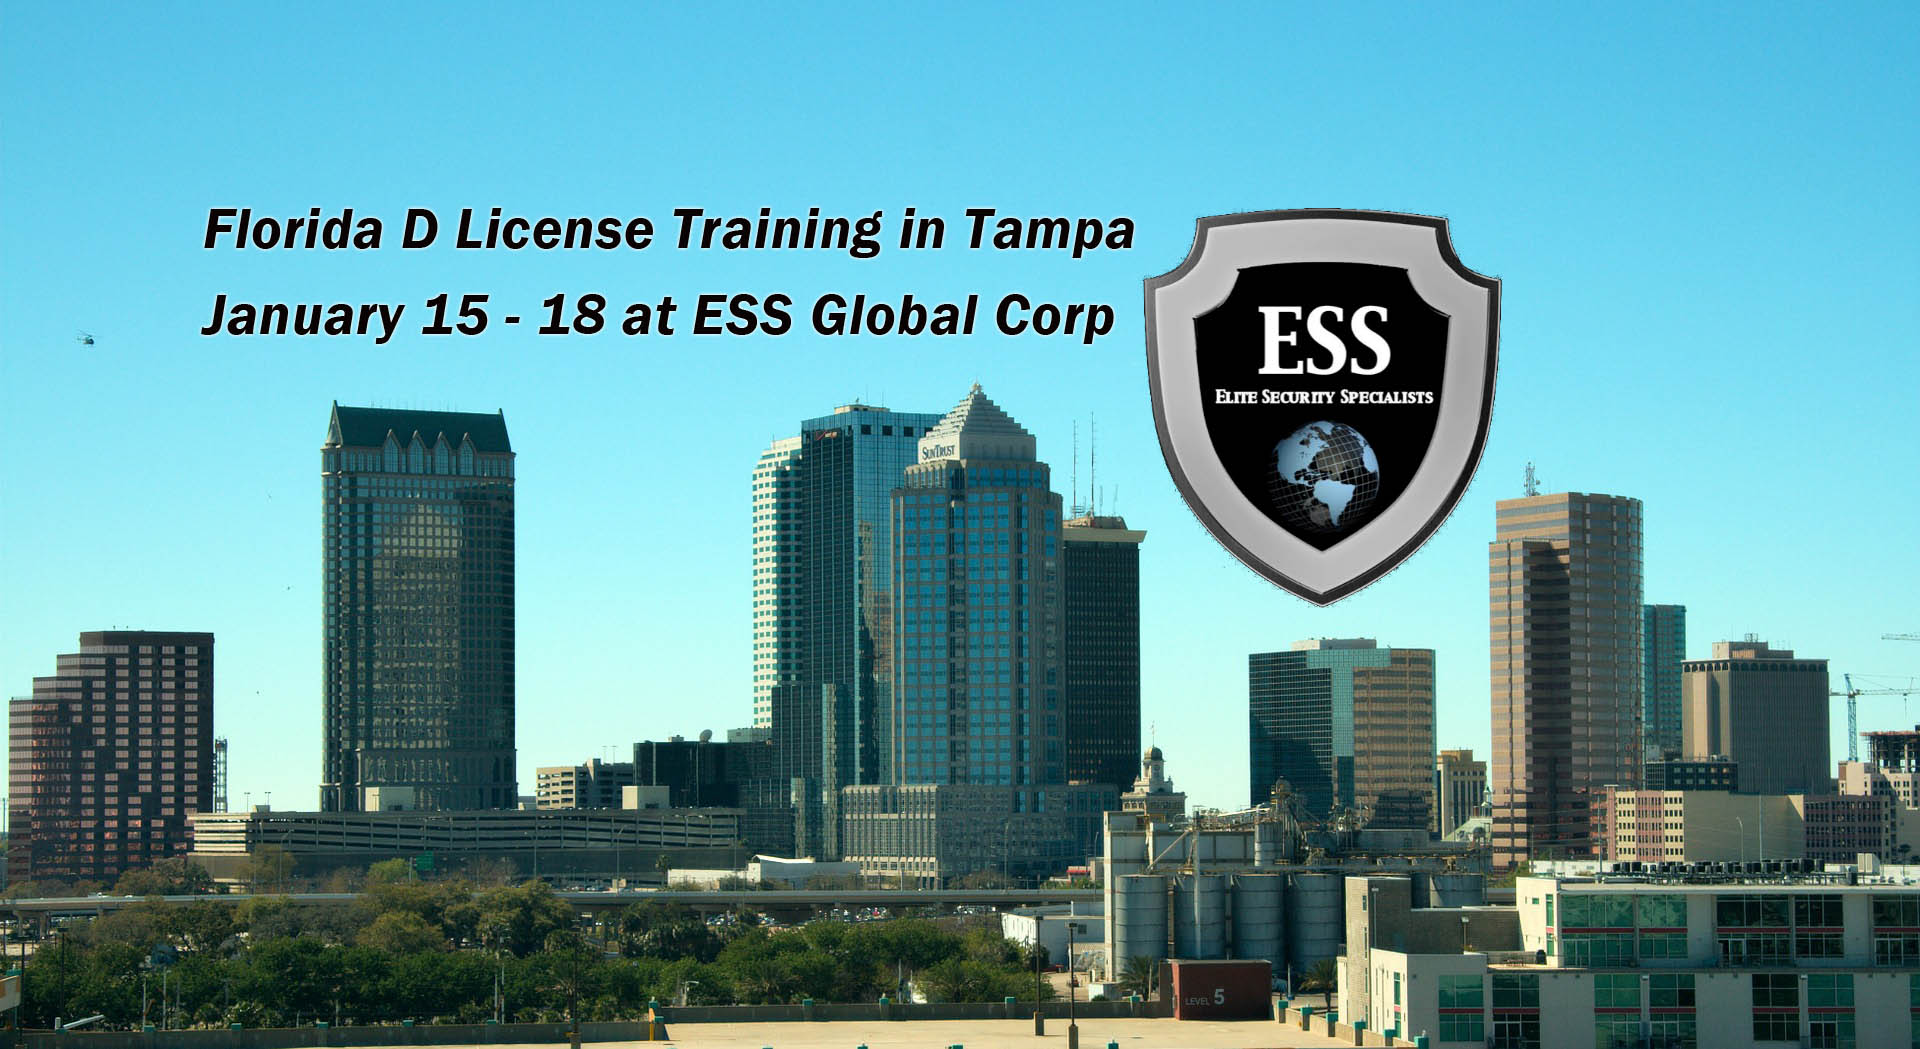 Florida D License Class in Tampa January 15 -18 at ESS Global